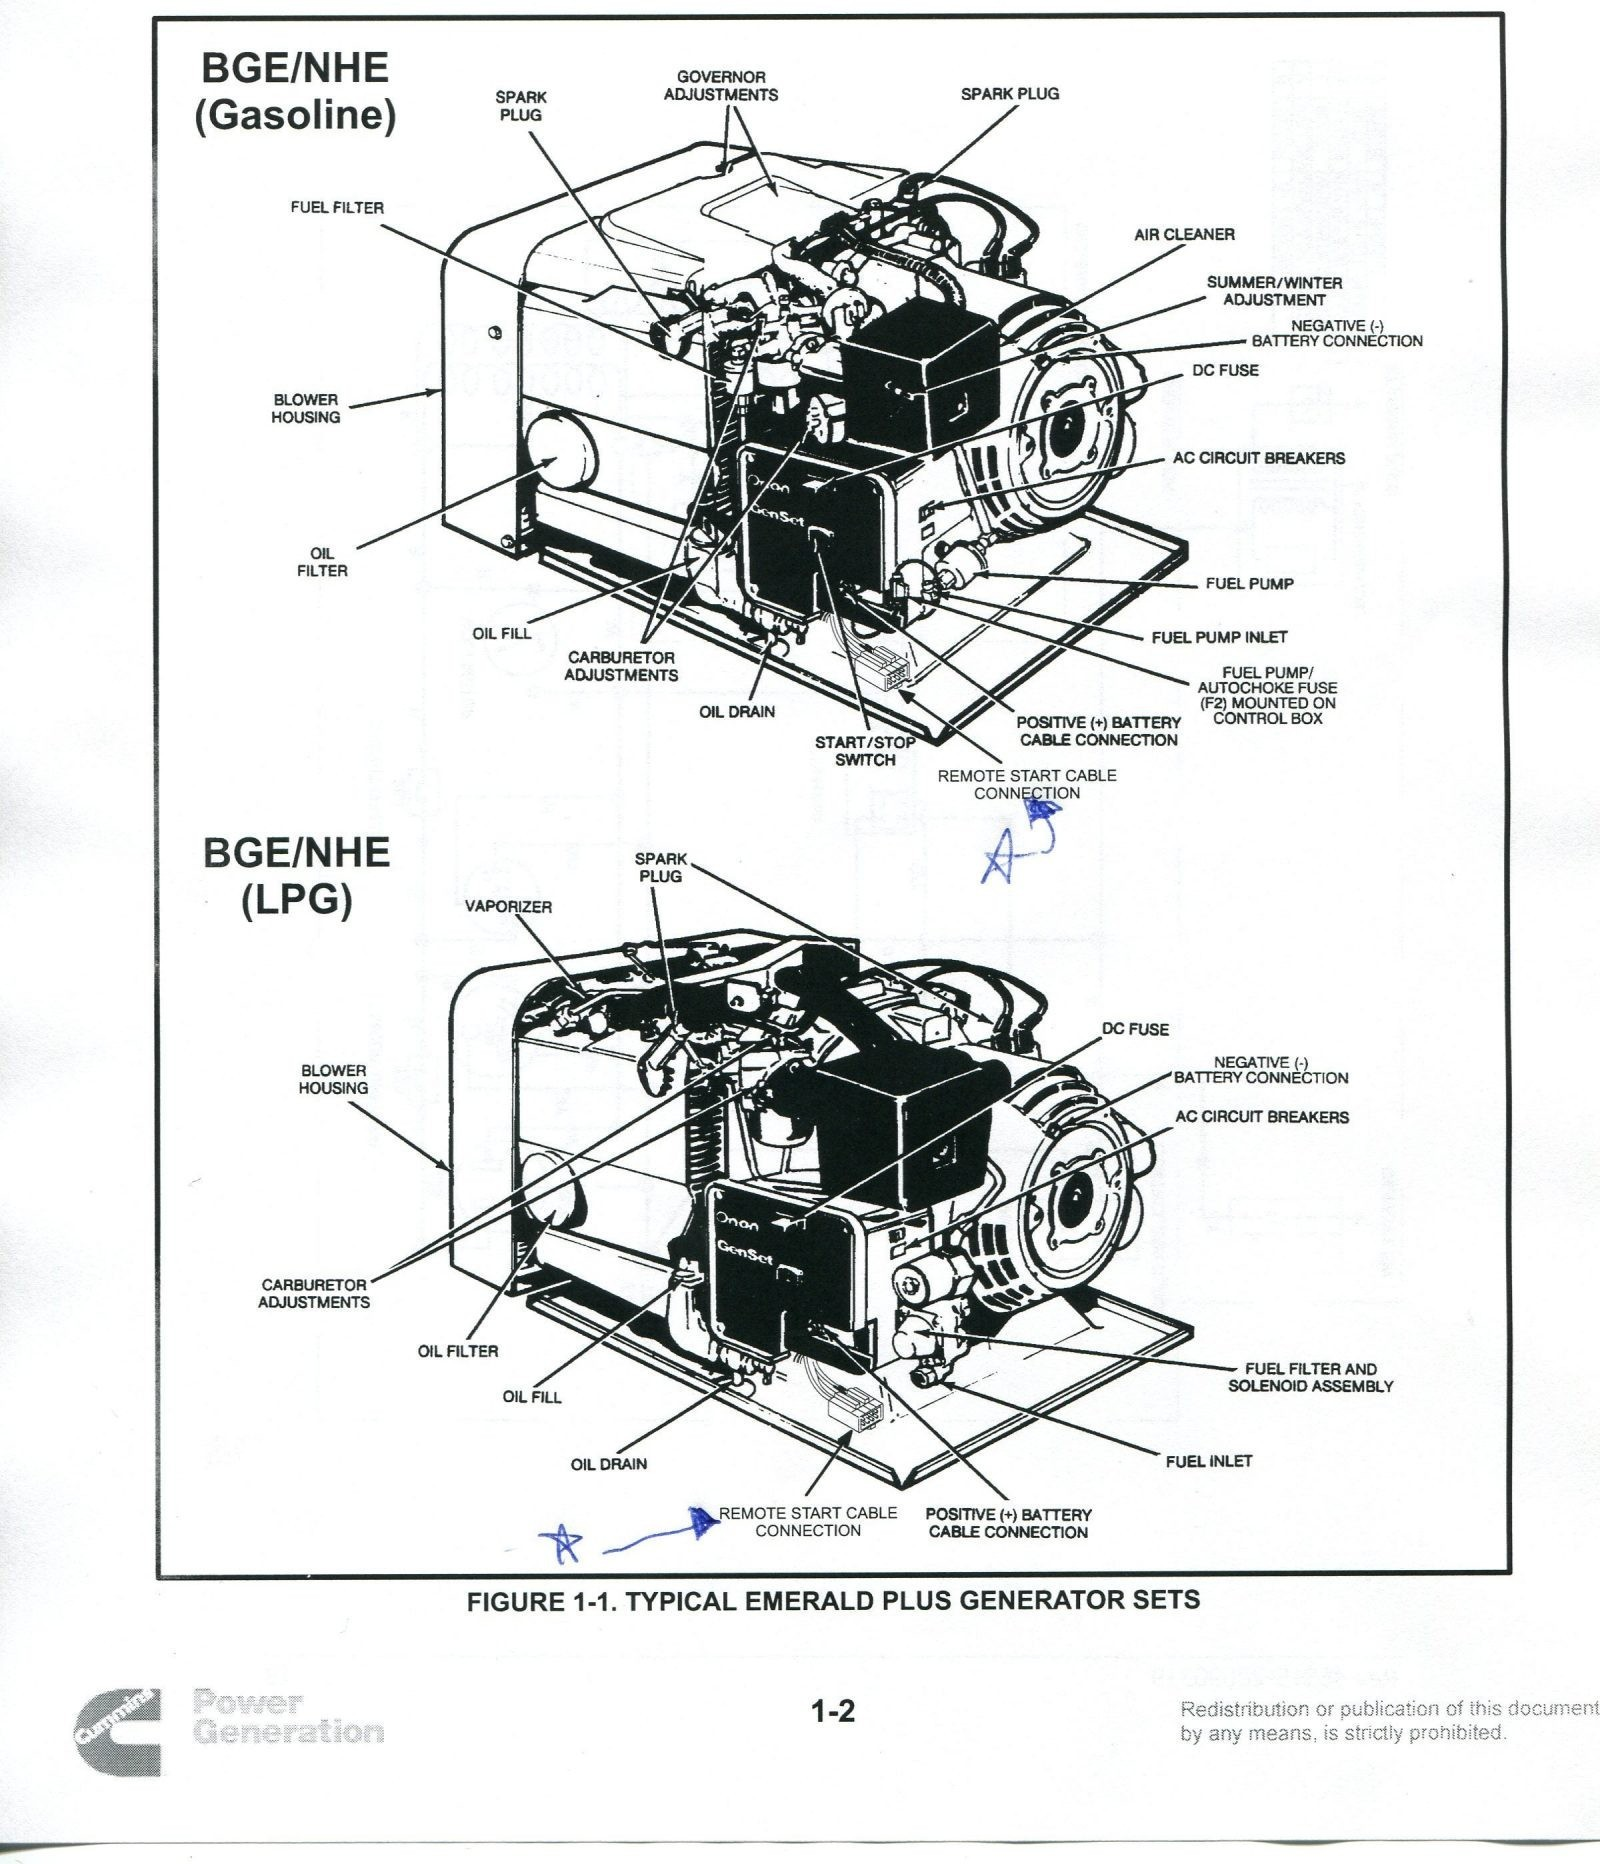 Wiring Diagram an Generator New Typical Rv Generator Wiring Diagram Fleetwood Rv Wiring Diagram